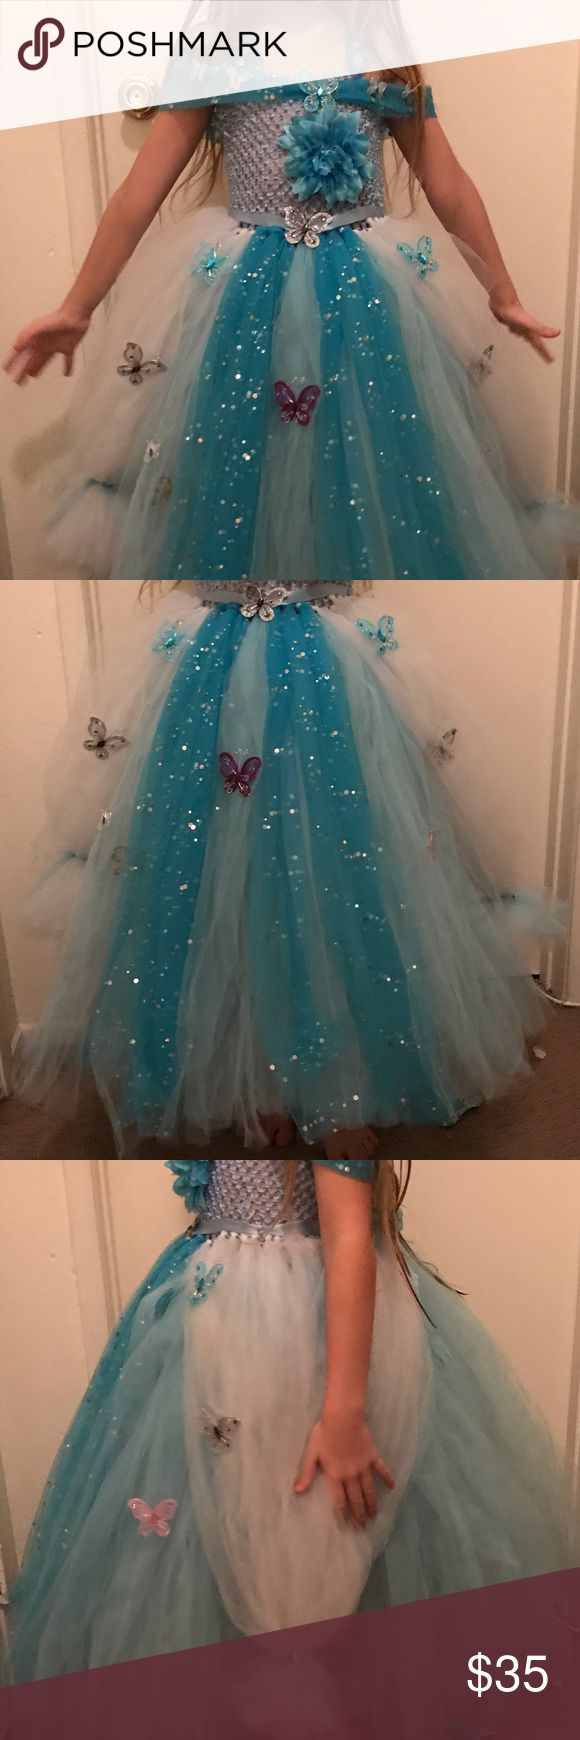 Cinderella Tutu Dress Handmade Cinderella Tutu Dress. Has an under layer of white tulle. Two layers of blue tulle. And then the decorations tulle (white on the hips tied into a bow. Blue sequins tulle in the front .) adorable butterflies all over the front and sides. Dresses